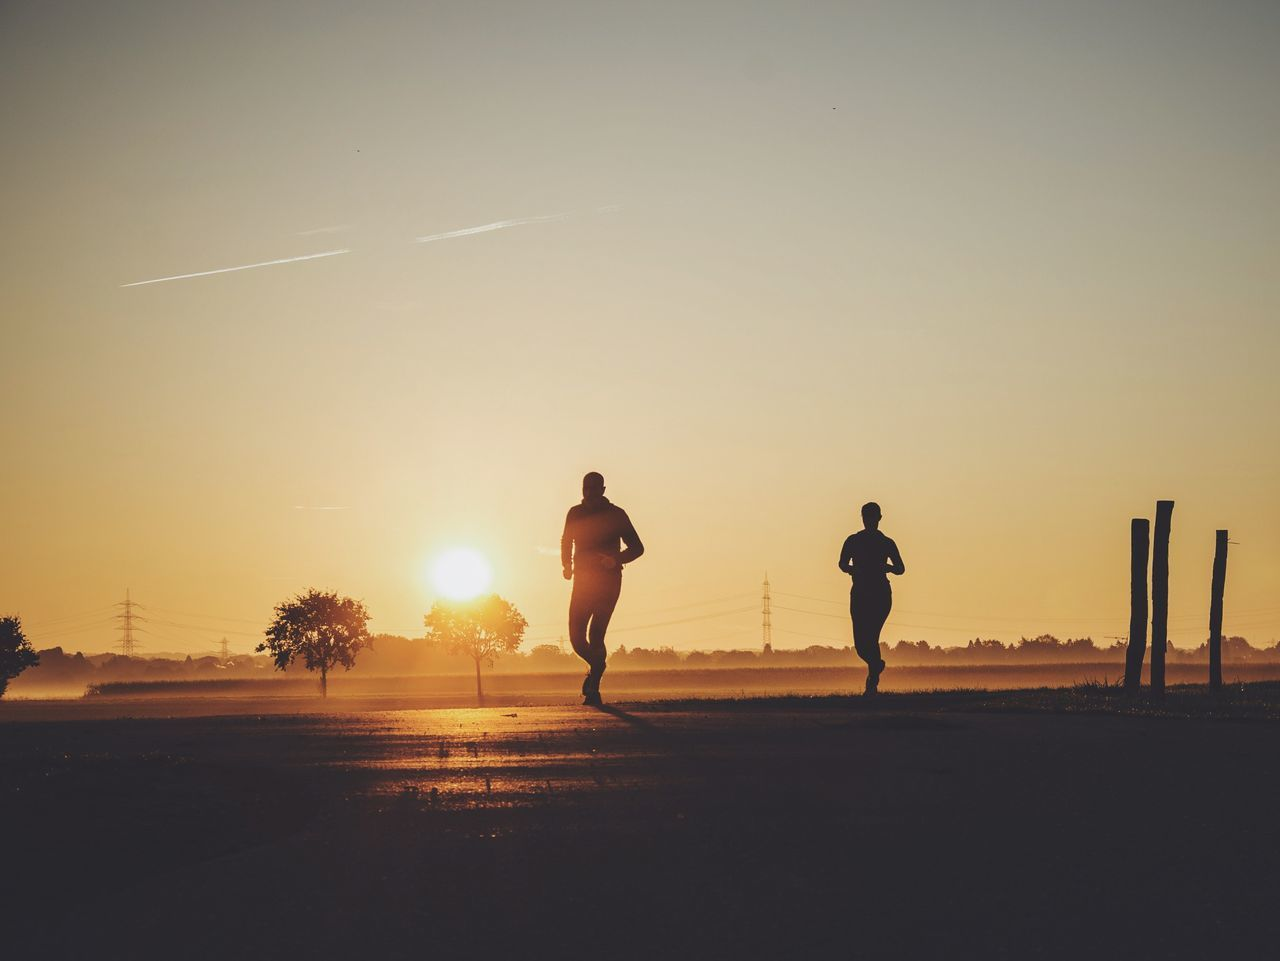 Silhouette people jogging on road against sky during sunset